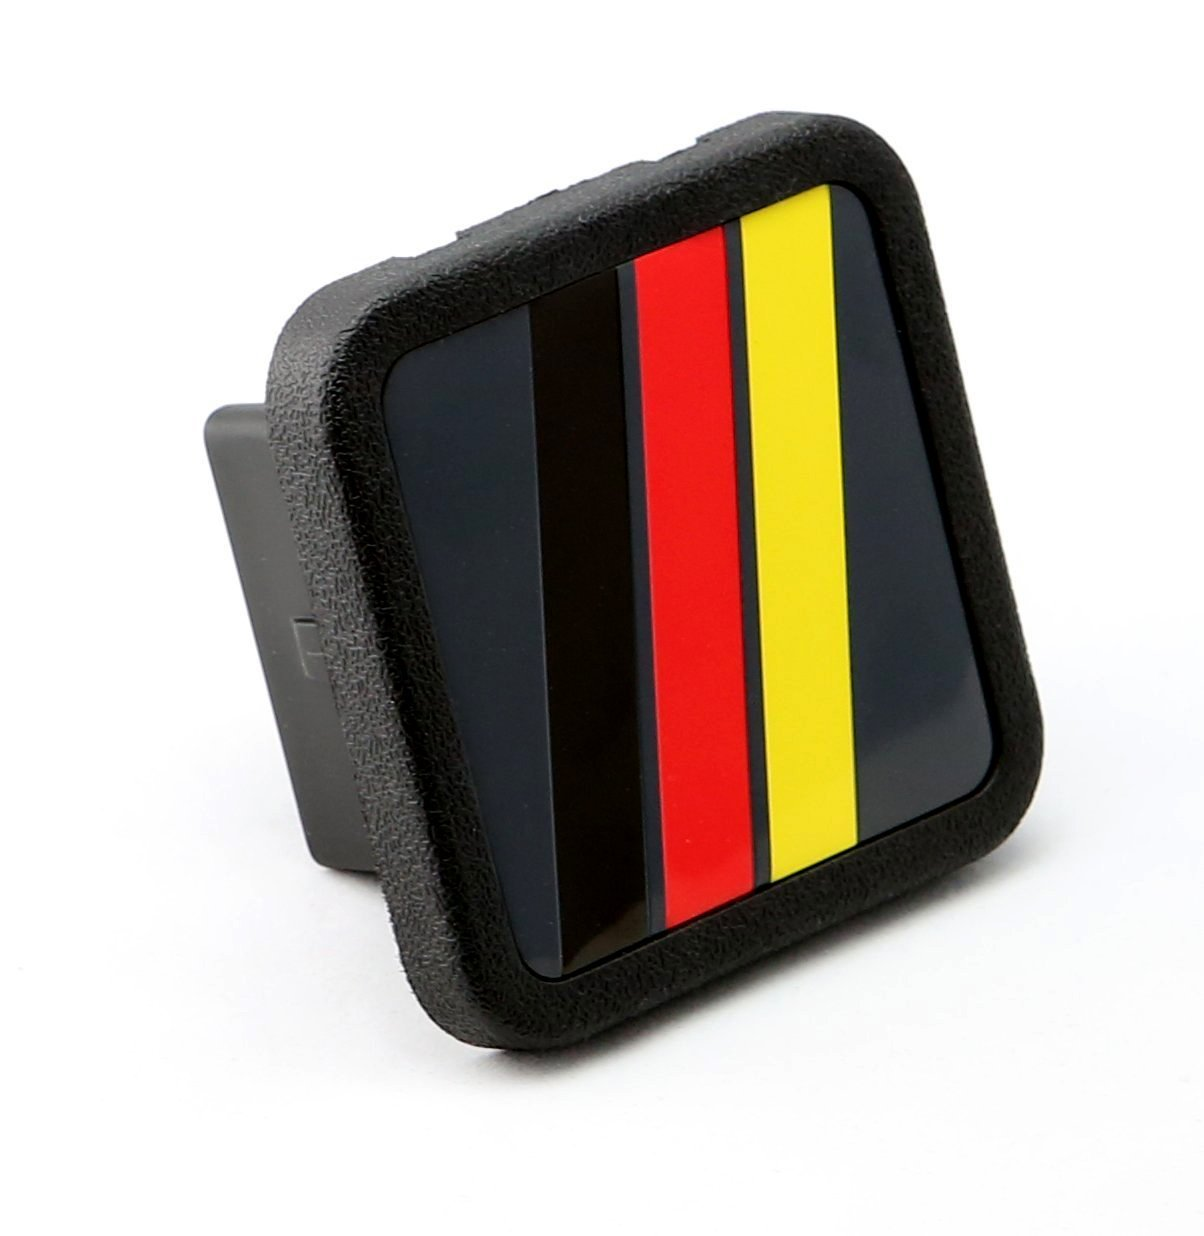 LFPartS Germany Flag Trailer Hitch Cover Tube Plug Insert Fits 2'' Receivers by LFPartS